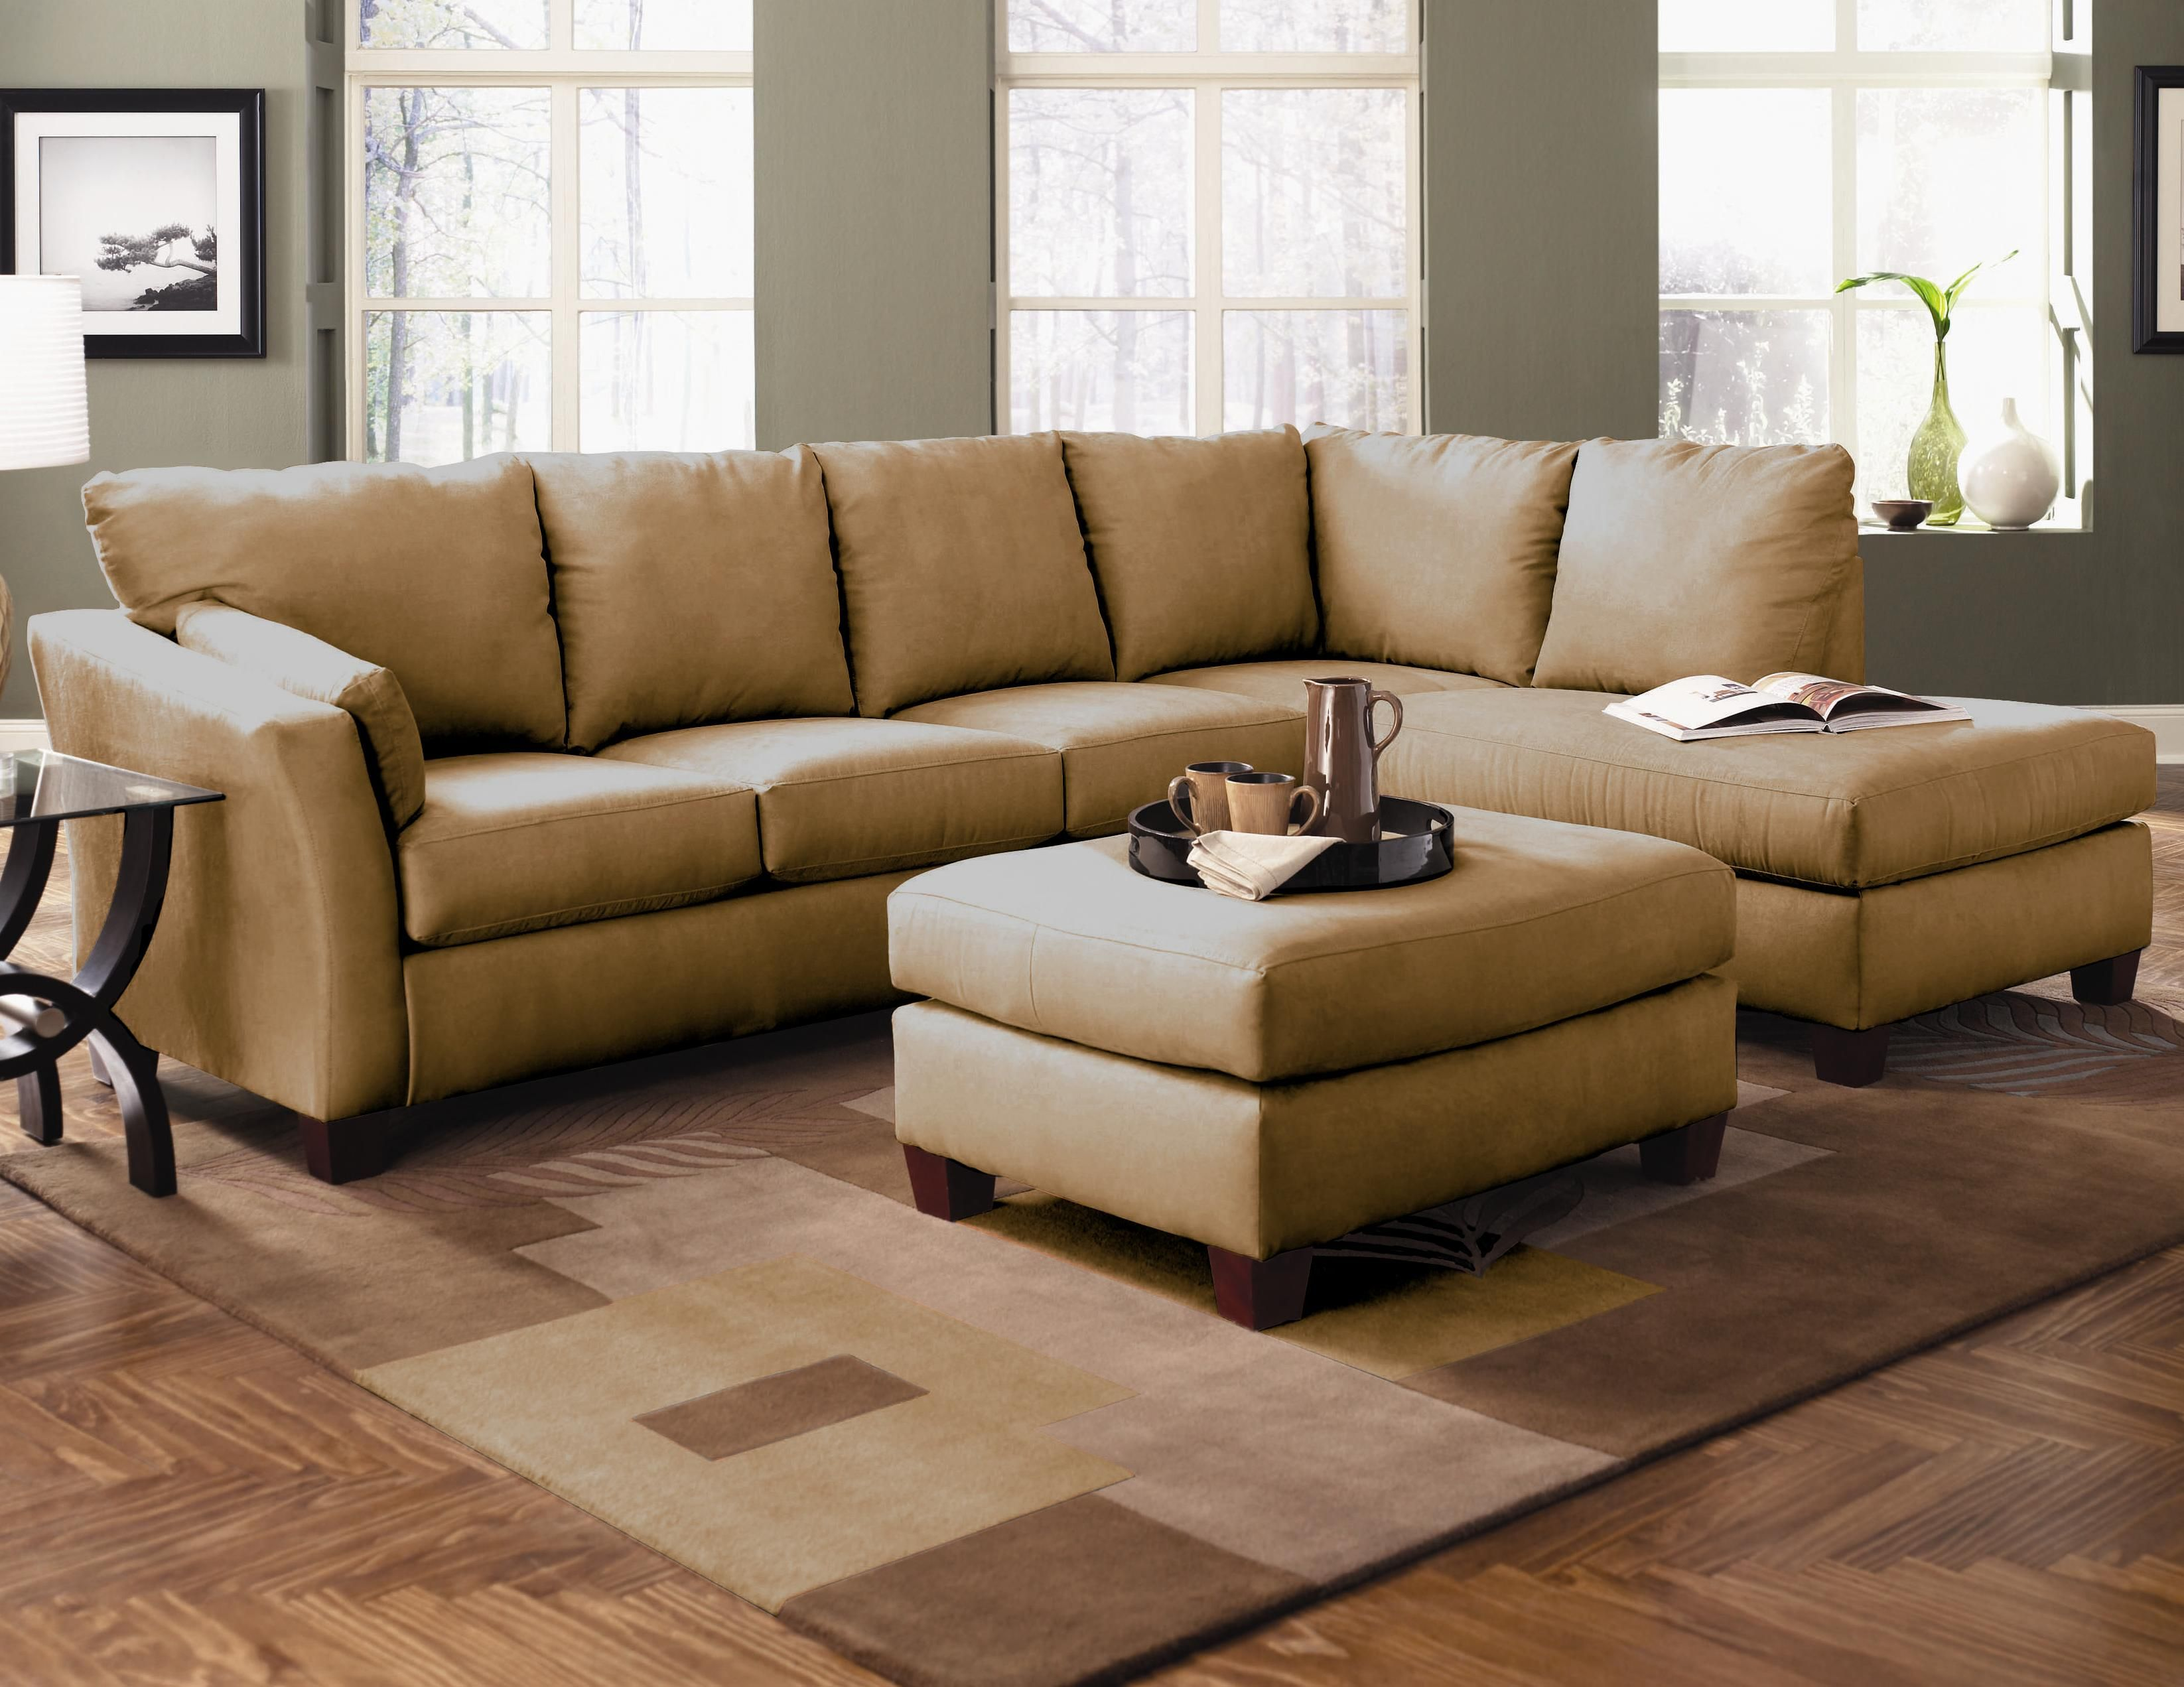 Magnificent microfiber sectional sofa in Living Room Other Metro